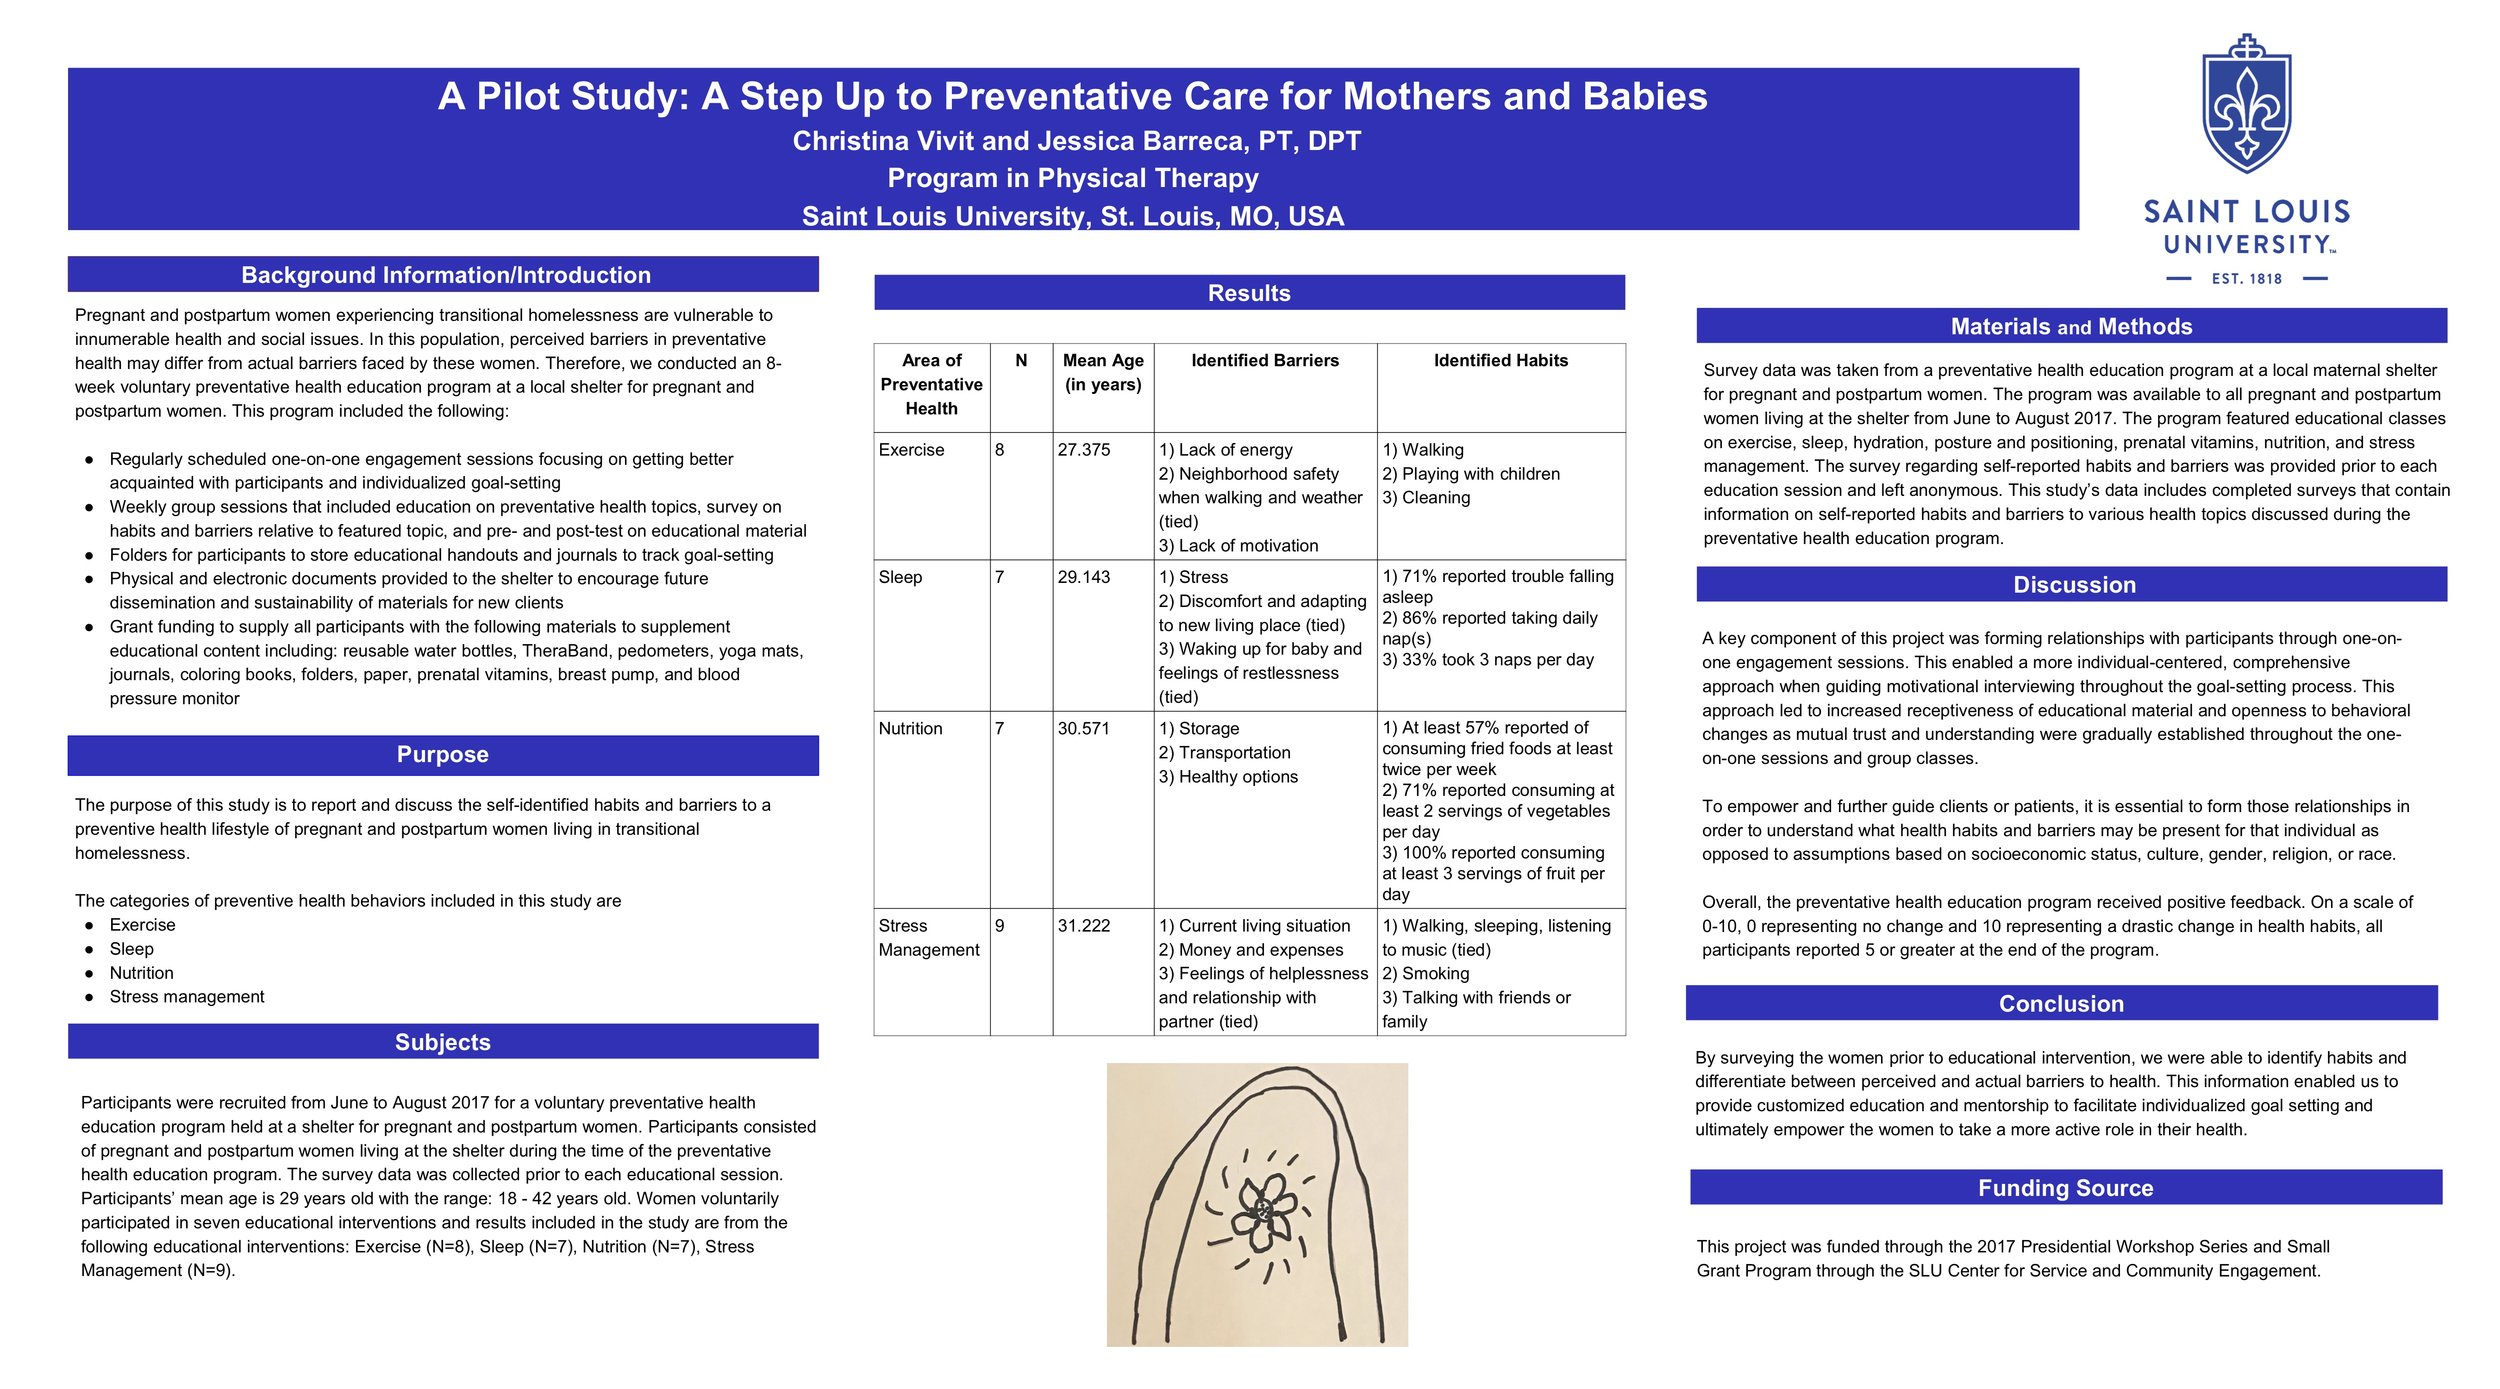 A Pilot Study: A Step Up to Preventative Care for Mothers and Babies  Christina Vivit* Jessica Barreca, PT, DPT *2018 ASAHP Thomas Elwood Scholar Recipient